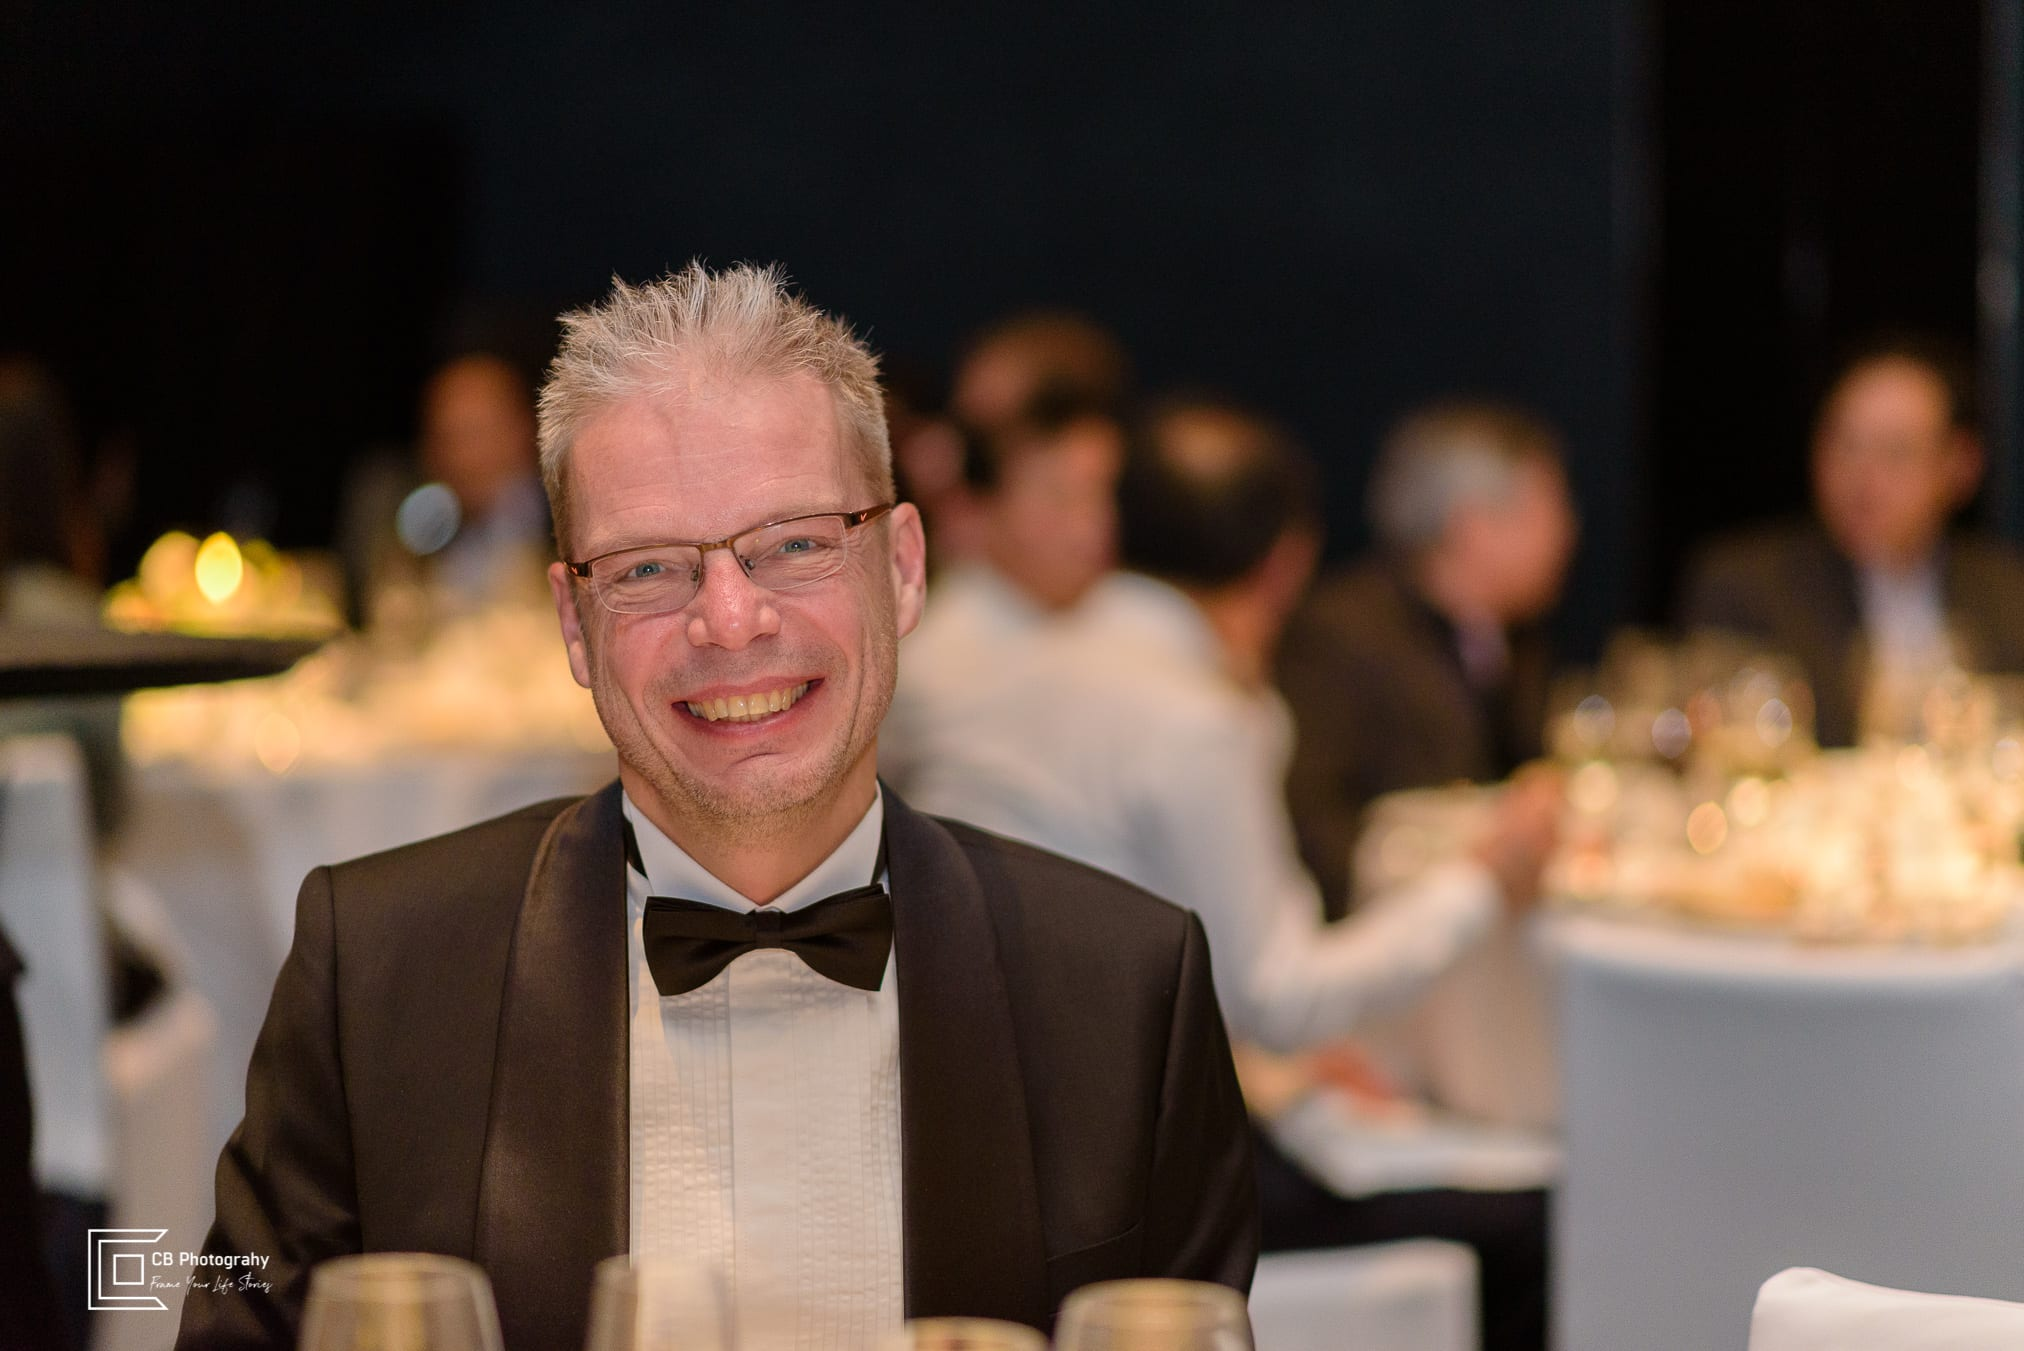 Portrait taken during a corporate event by Cristian Bucur Photographer in Tokyo